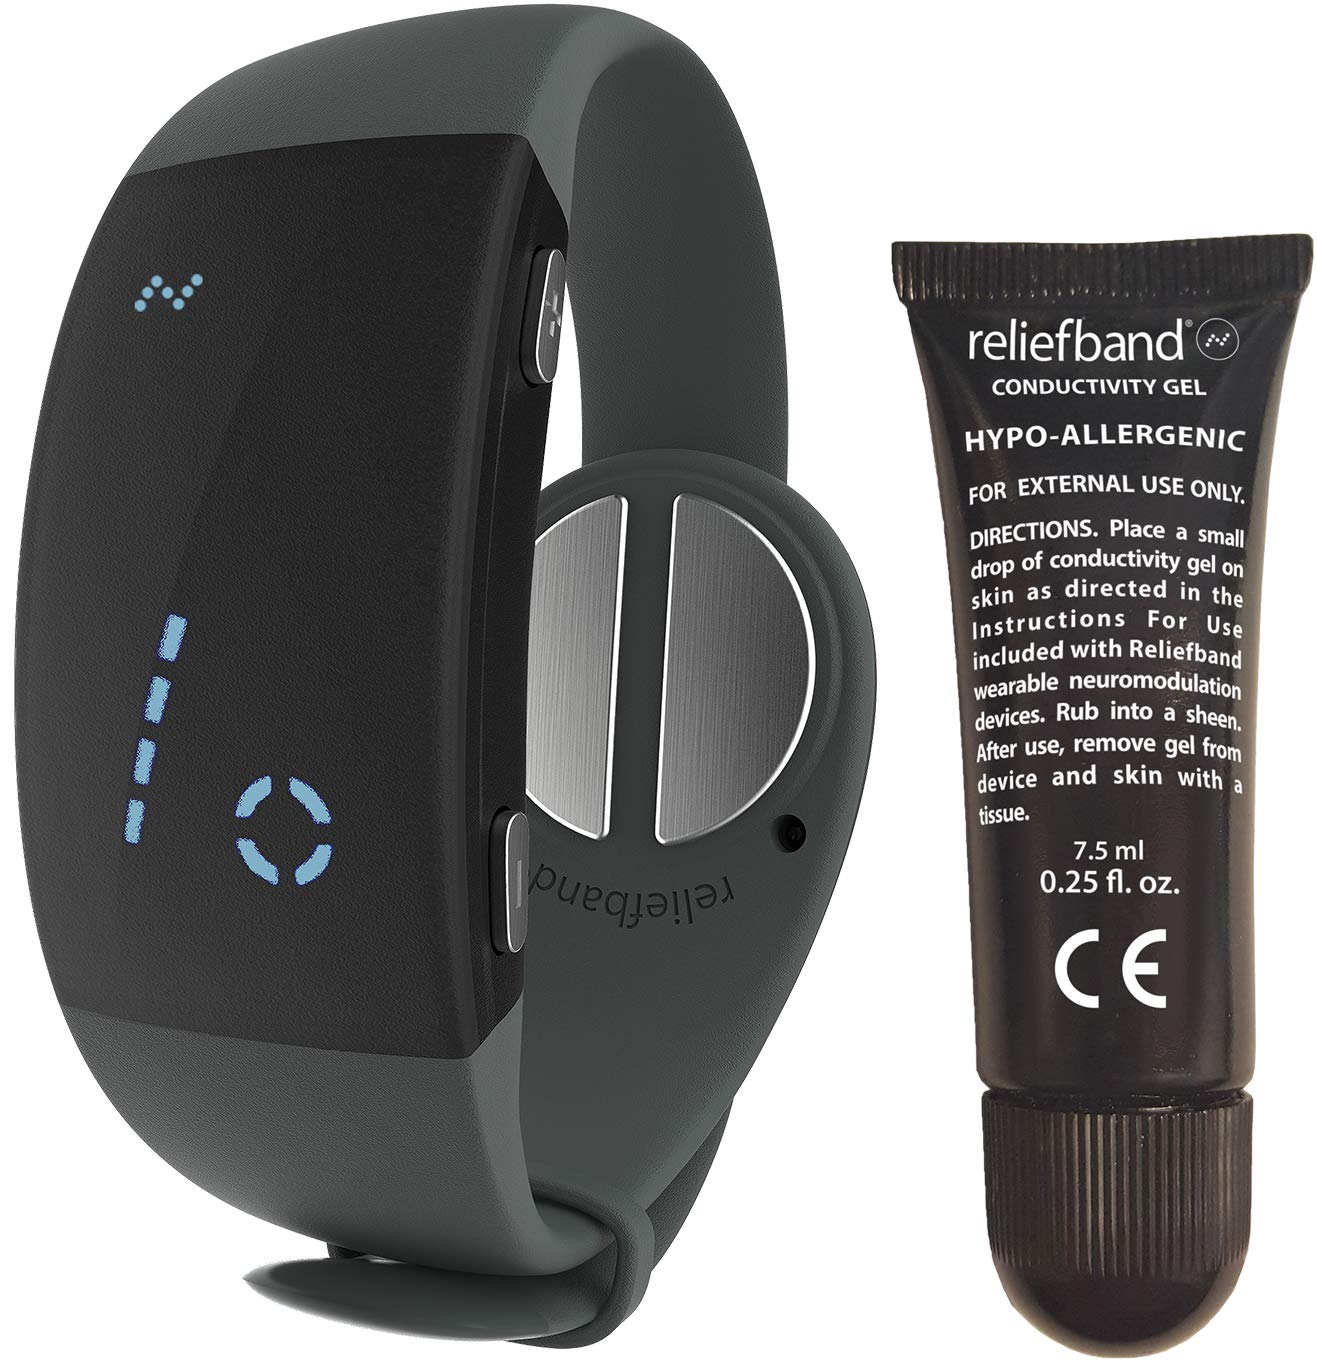 Reliefband 2.0 Motion Sickness Wristband - Easy-to-Use, Fast, Drug-Free Nausea Relief Band Helps w/Morning Sickness, Nausea, Sea Sickness, Retching, Vomiting (USB Charging Cable, Charcoal) by Reliefband